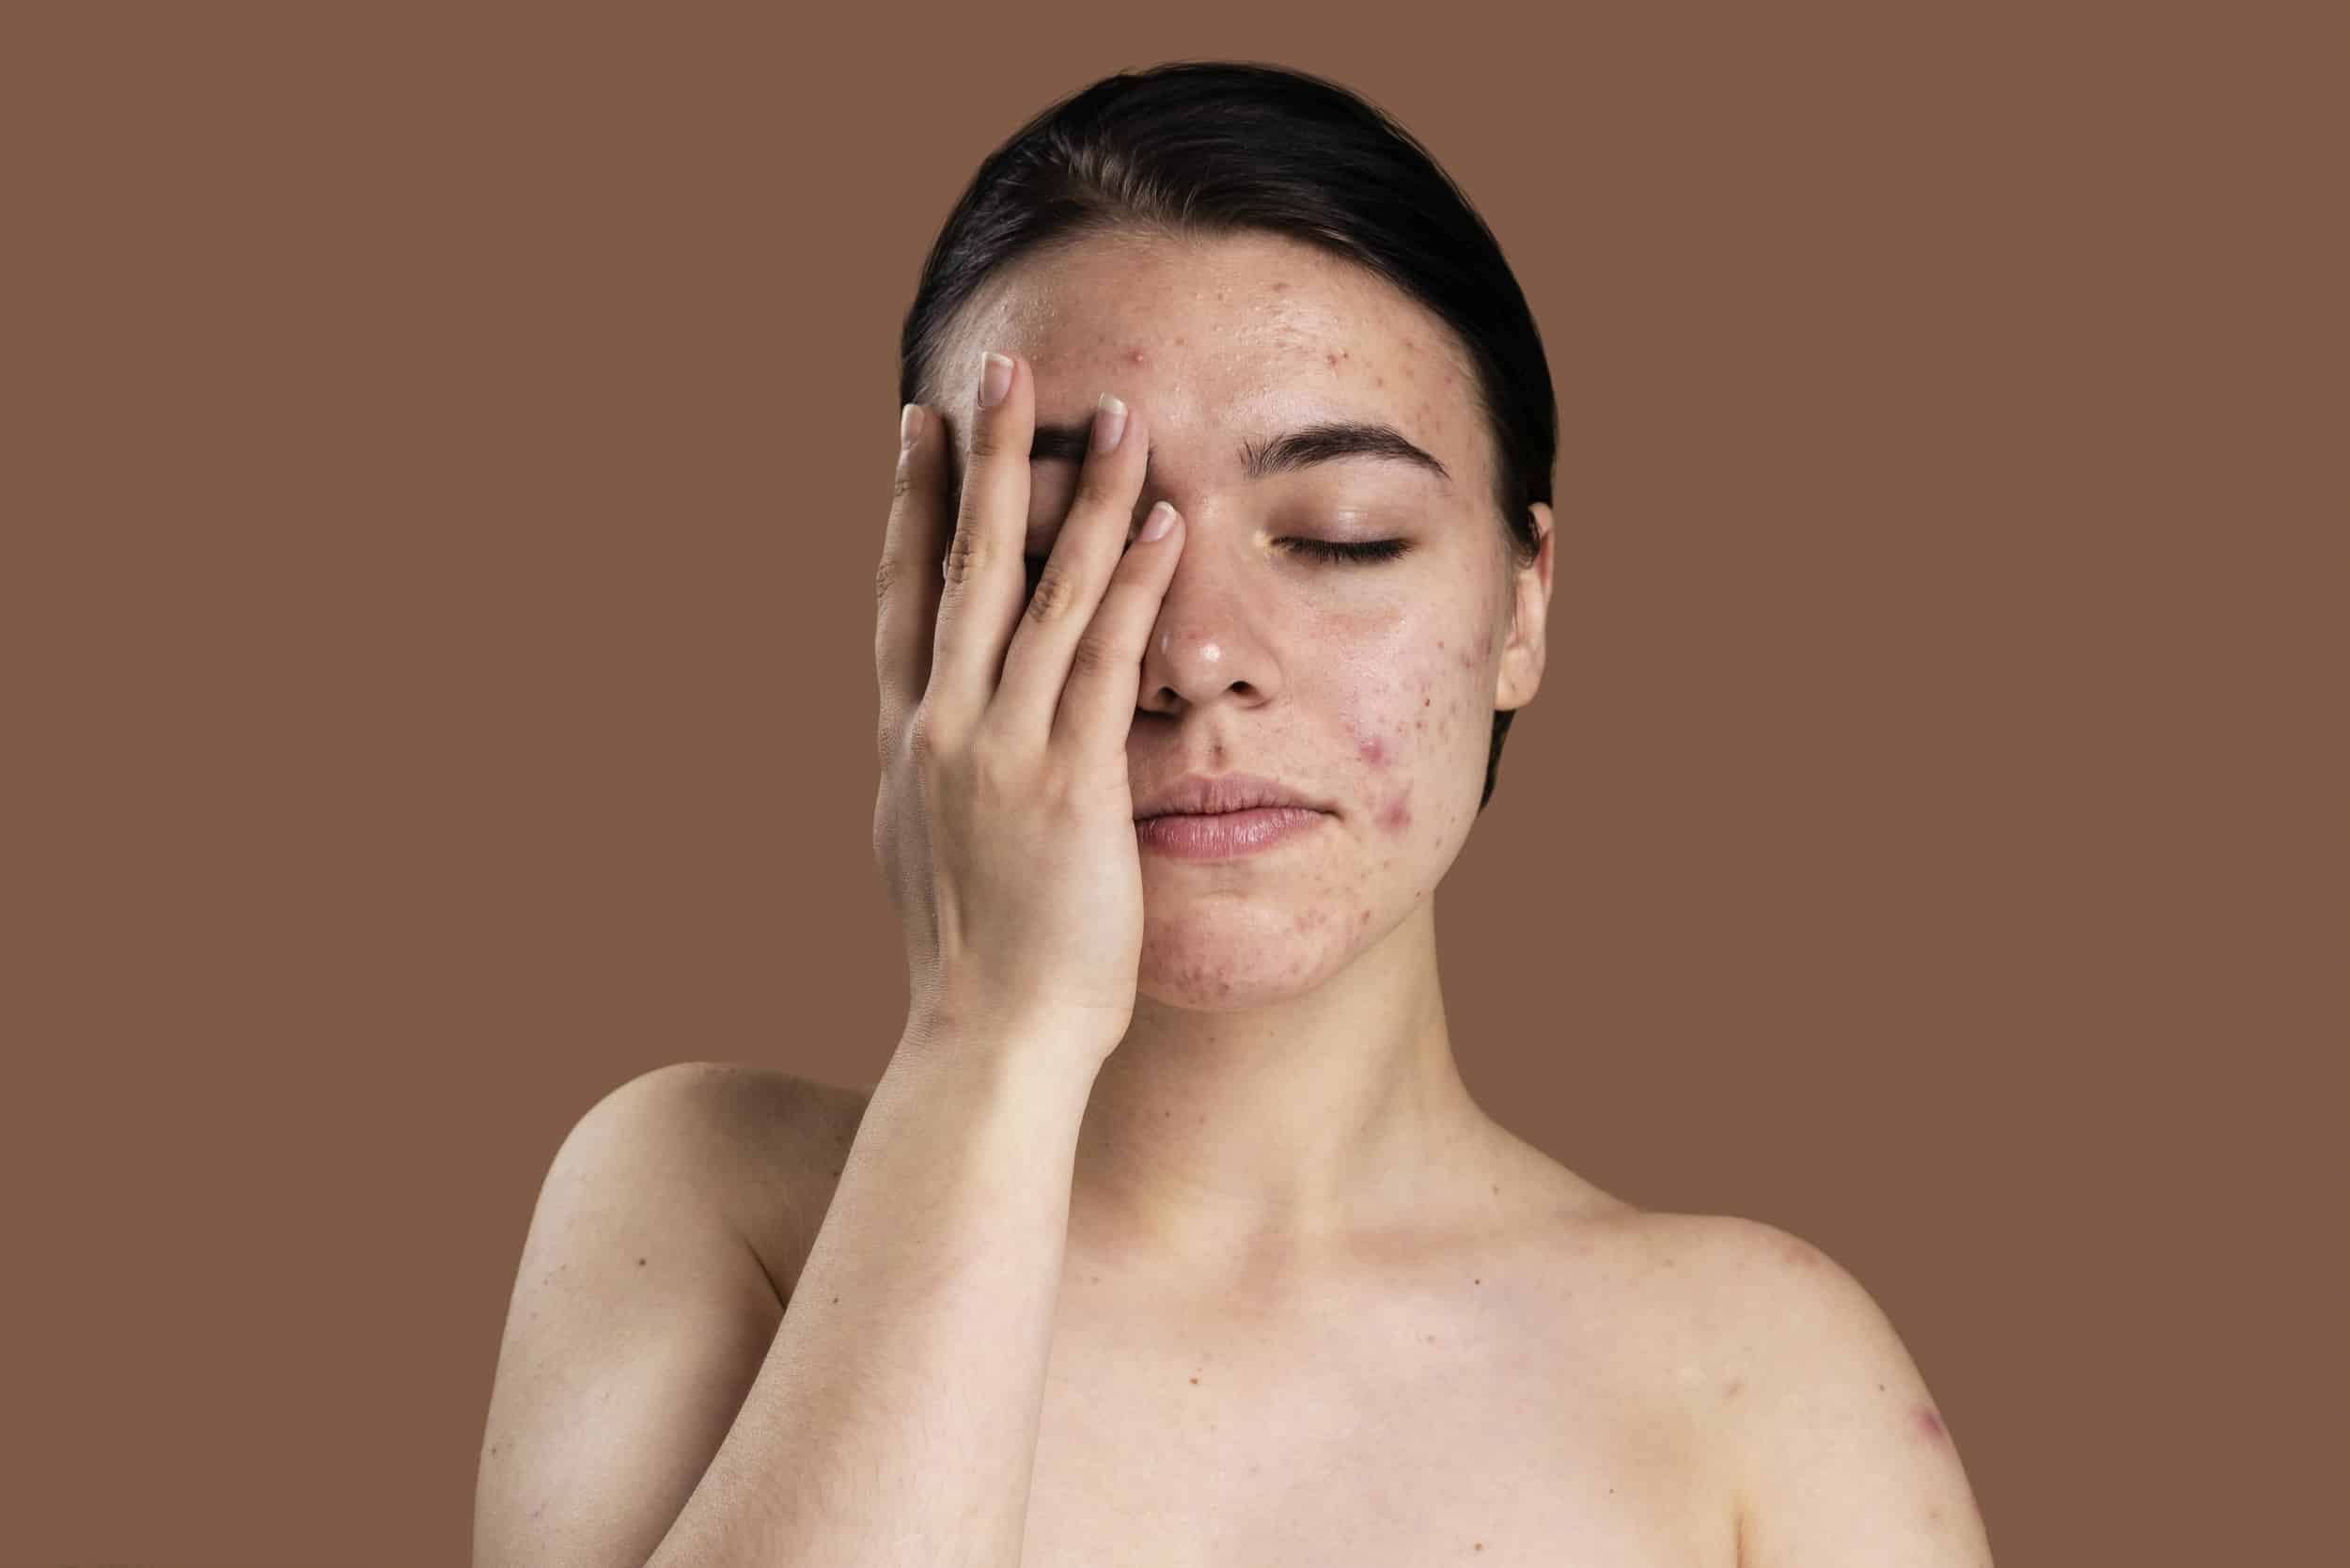 can dry skin cause acne